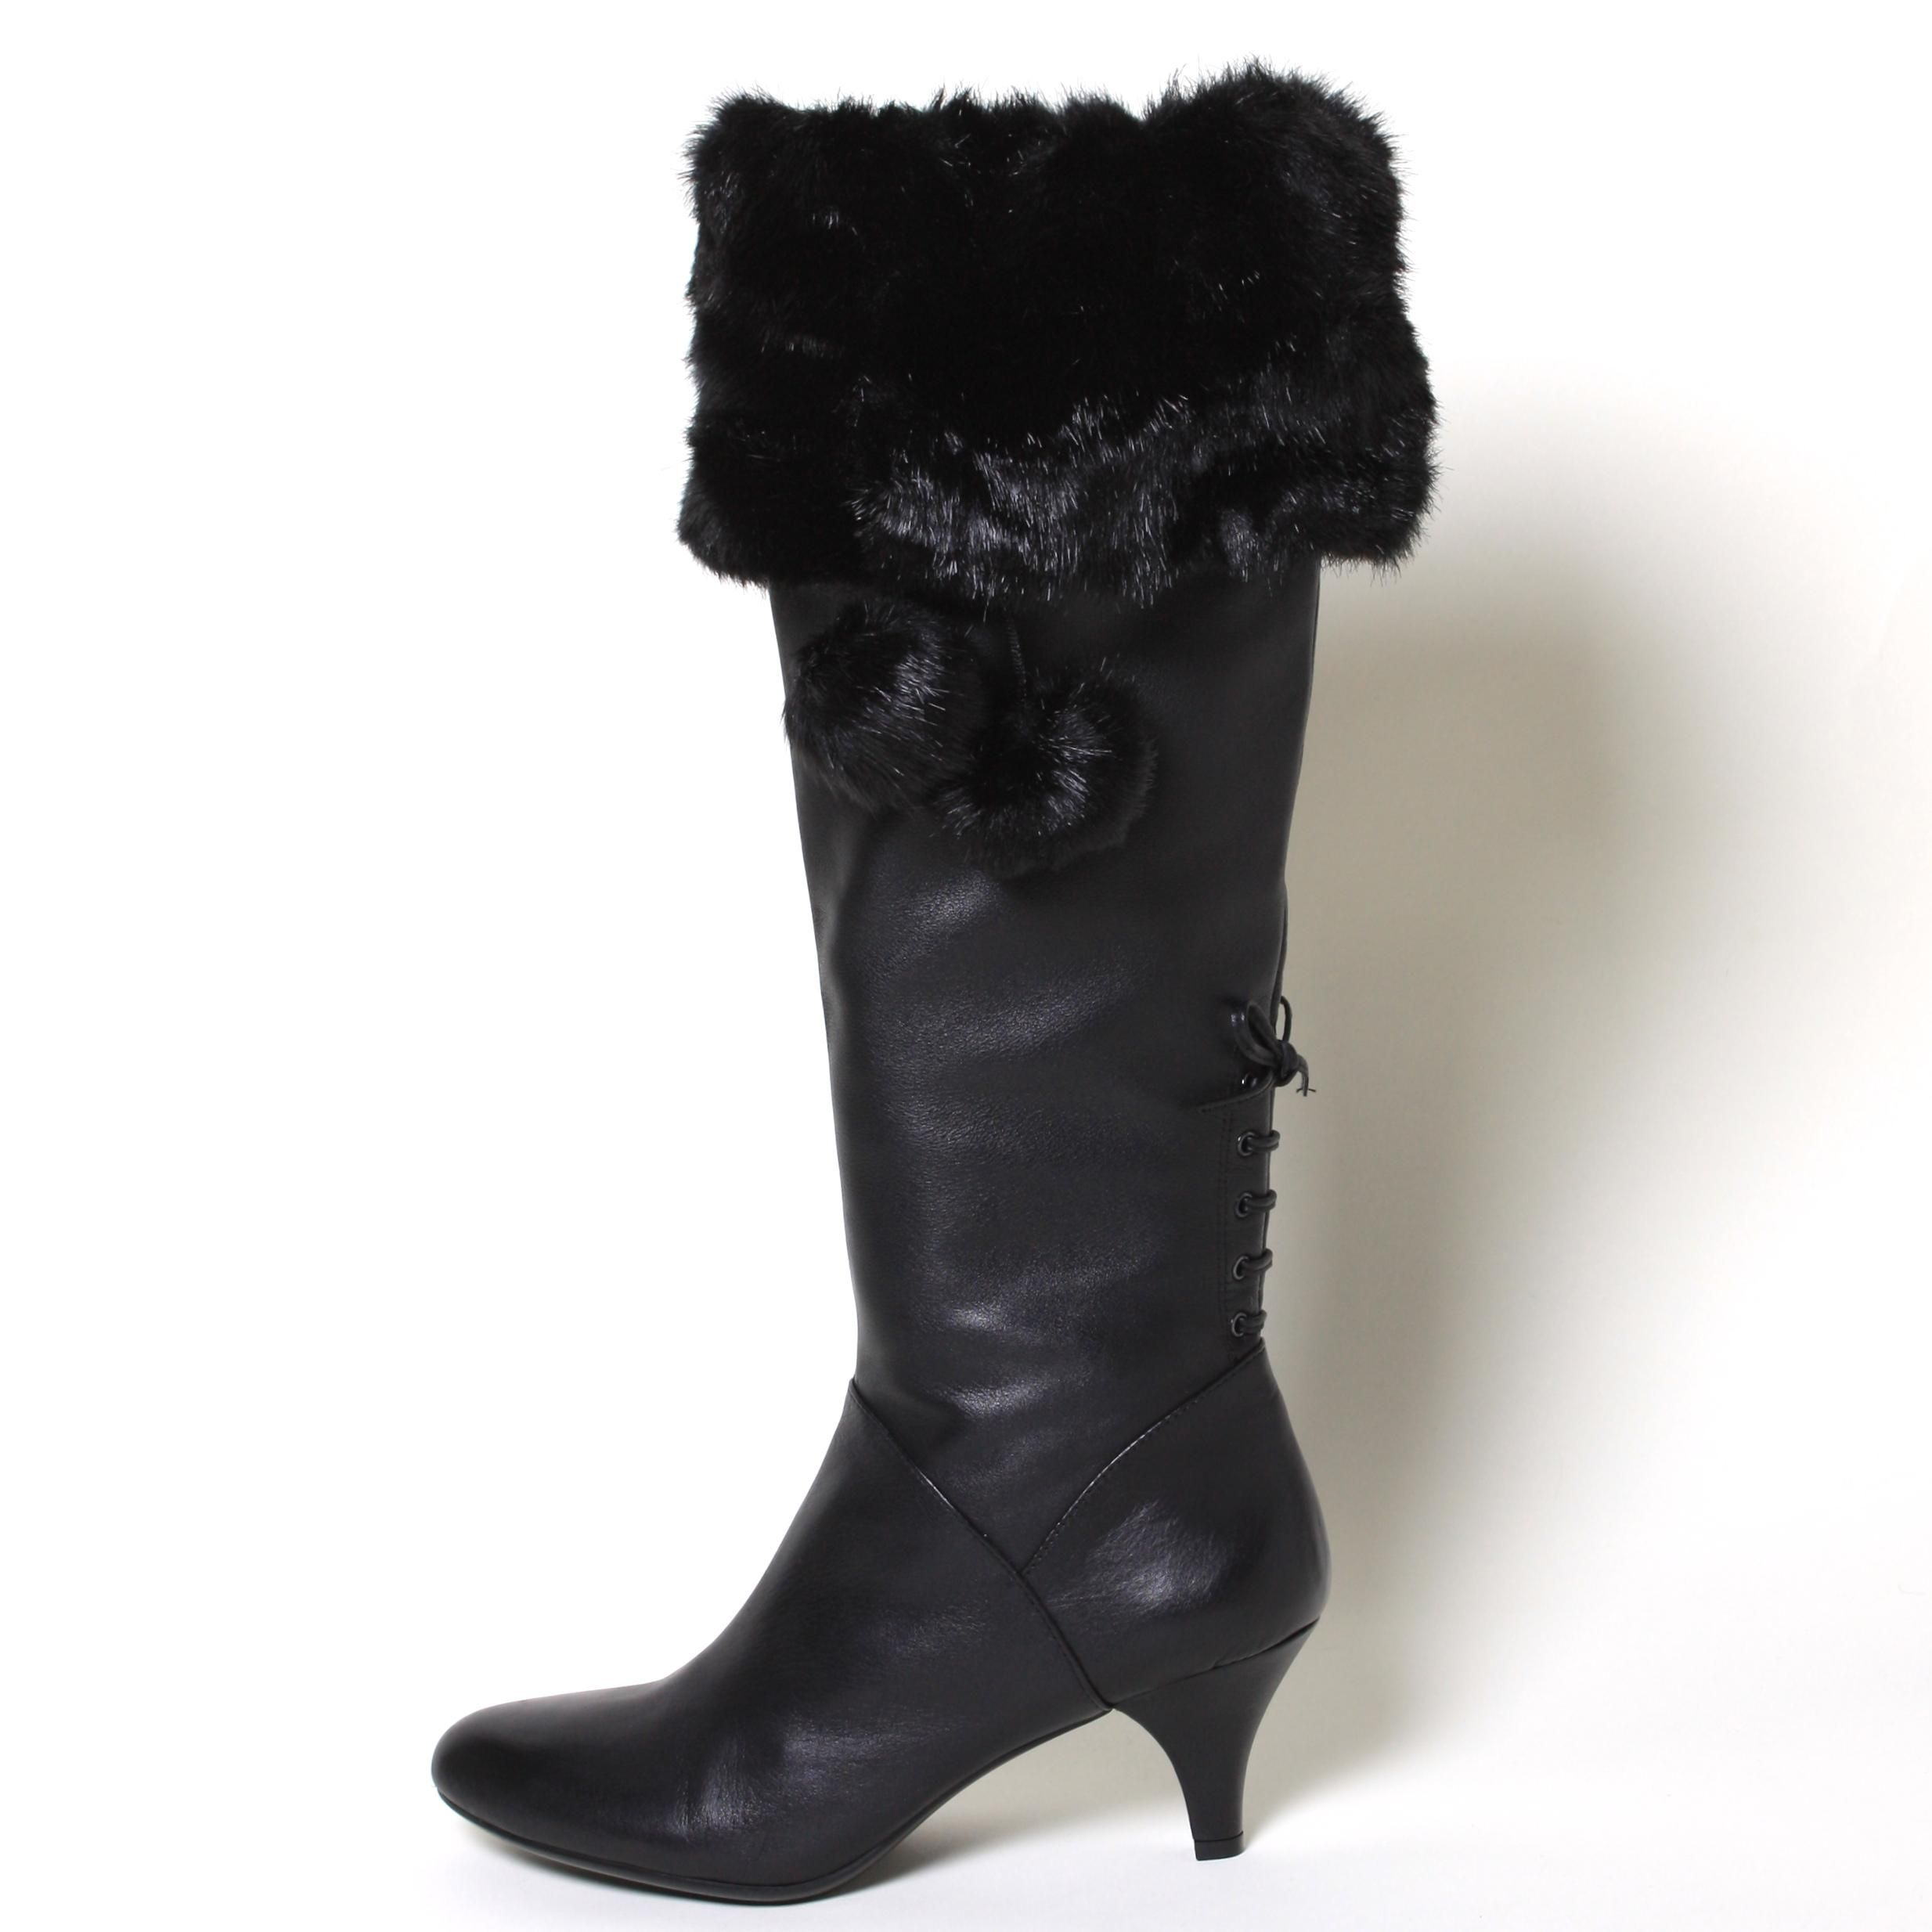 Must have winter accessory - Black Mink Faux Fur Boot Toppers from Top of the Boot. www.mytopoftheboot.com